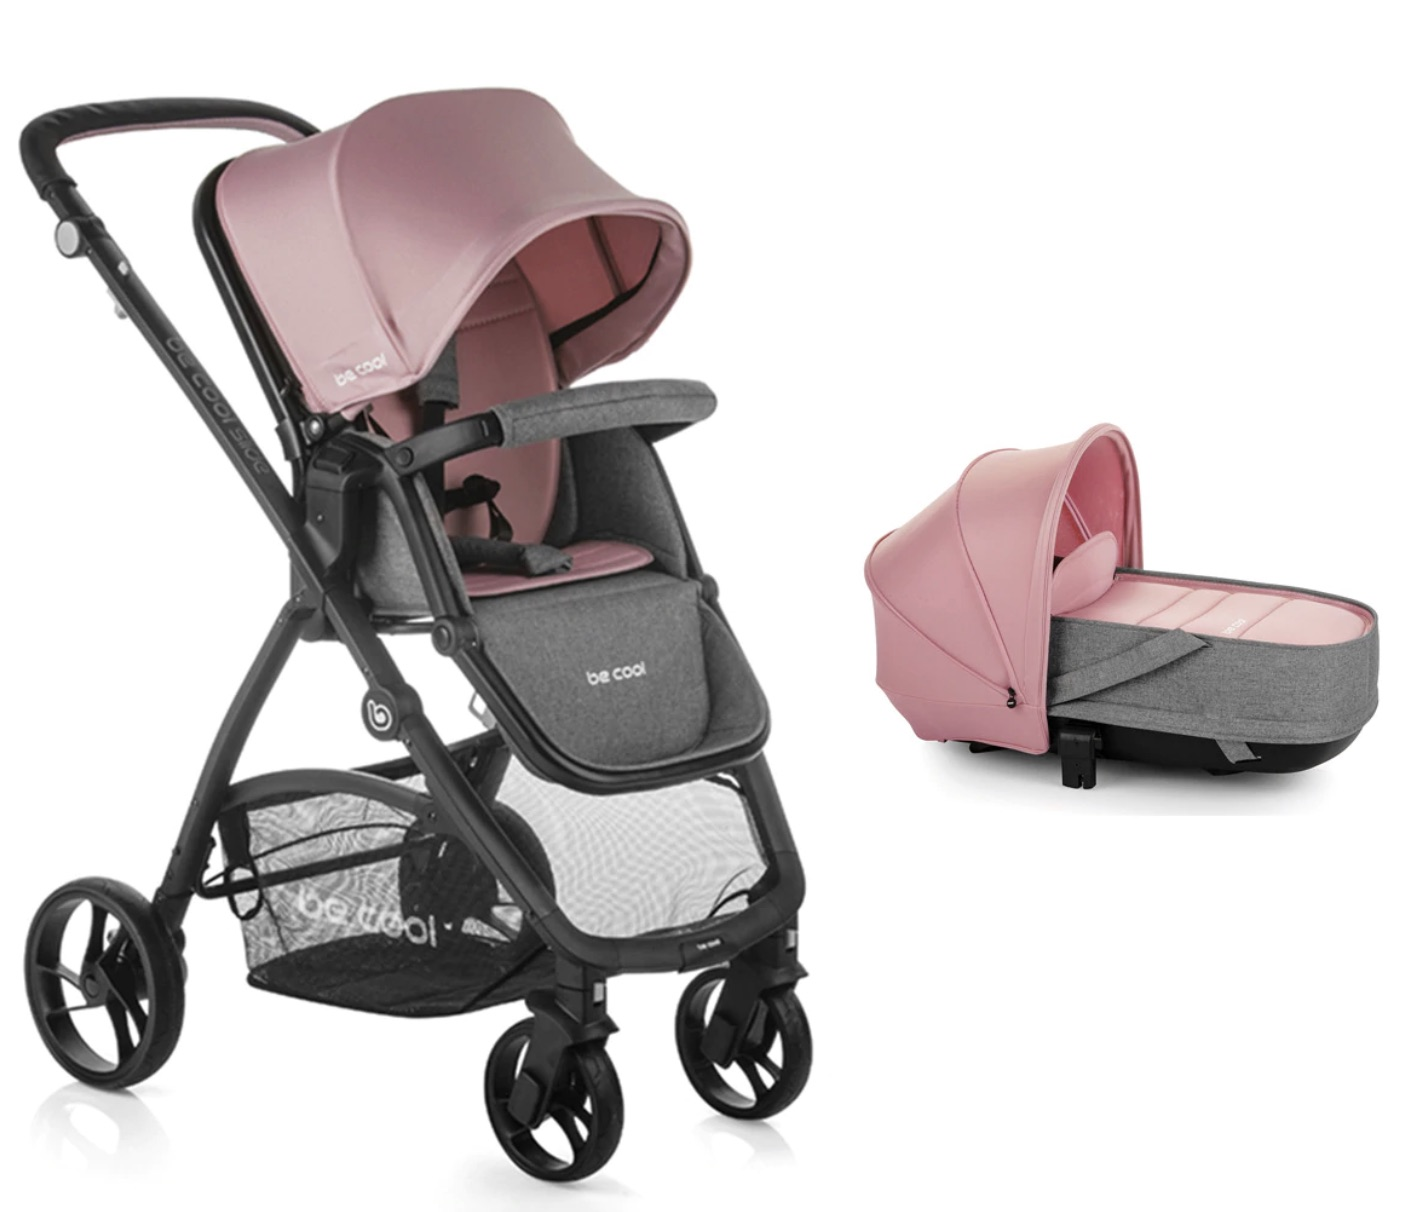 BE COOL  Coche de paseo dúo Be Cool Slide con Capazo blando Crib Be Solid Be Pink rosa/gris